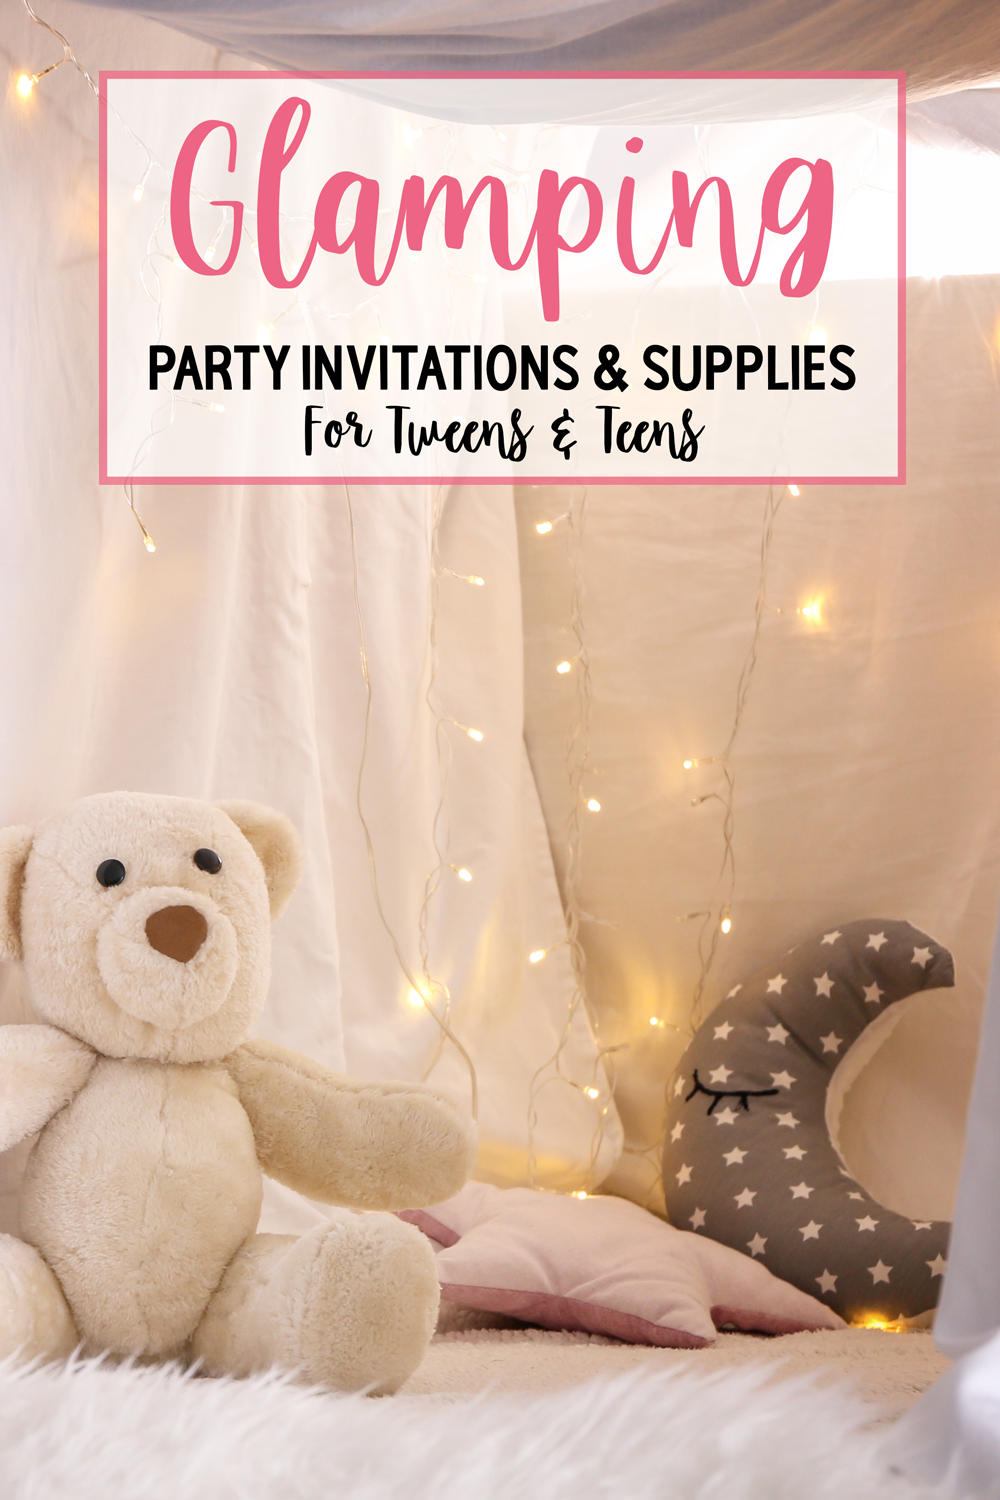 Printable Glamping Party Invitations & Party Supplies For Tweens & Teens